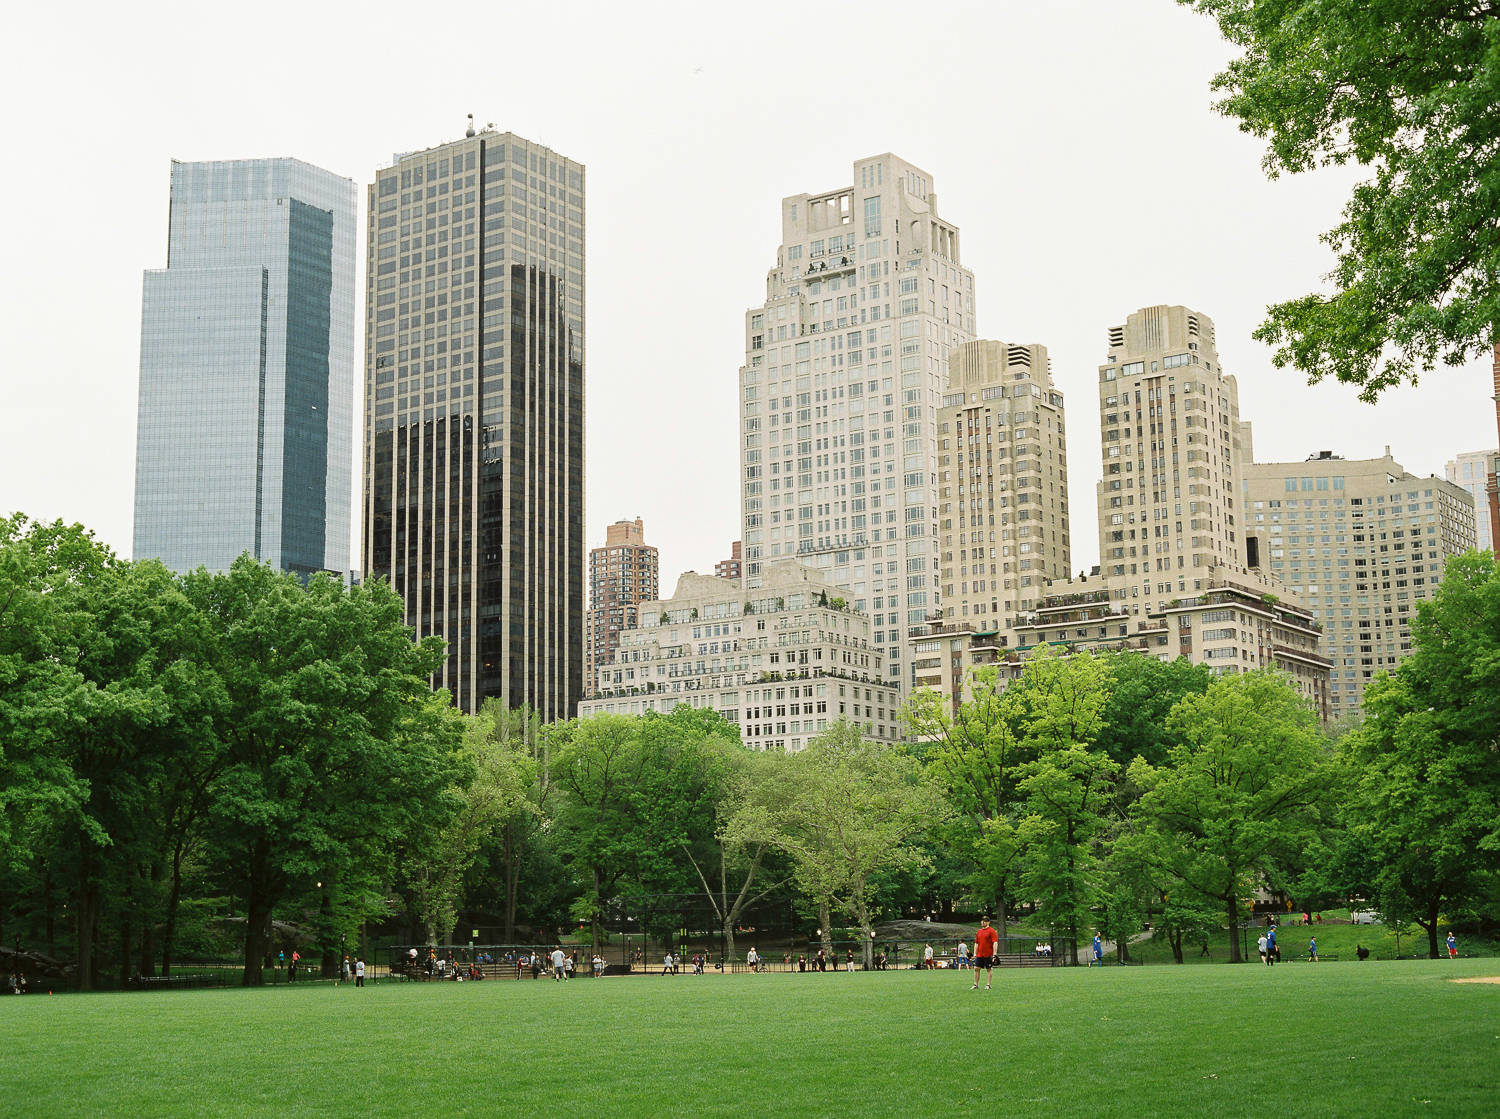 Central Park is a popular place for people who play sports